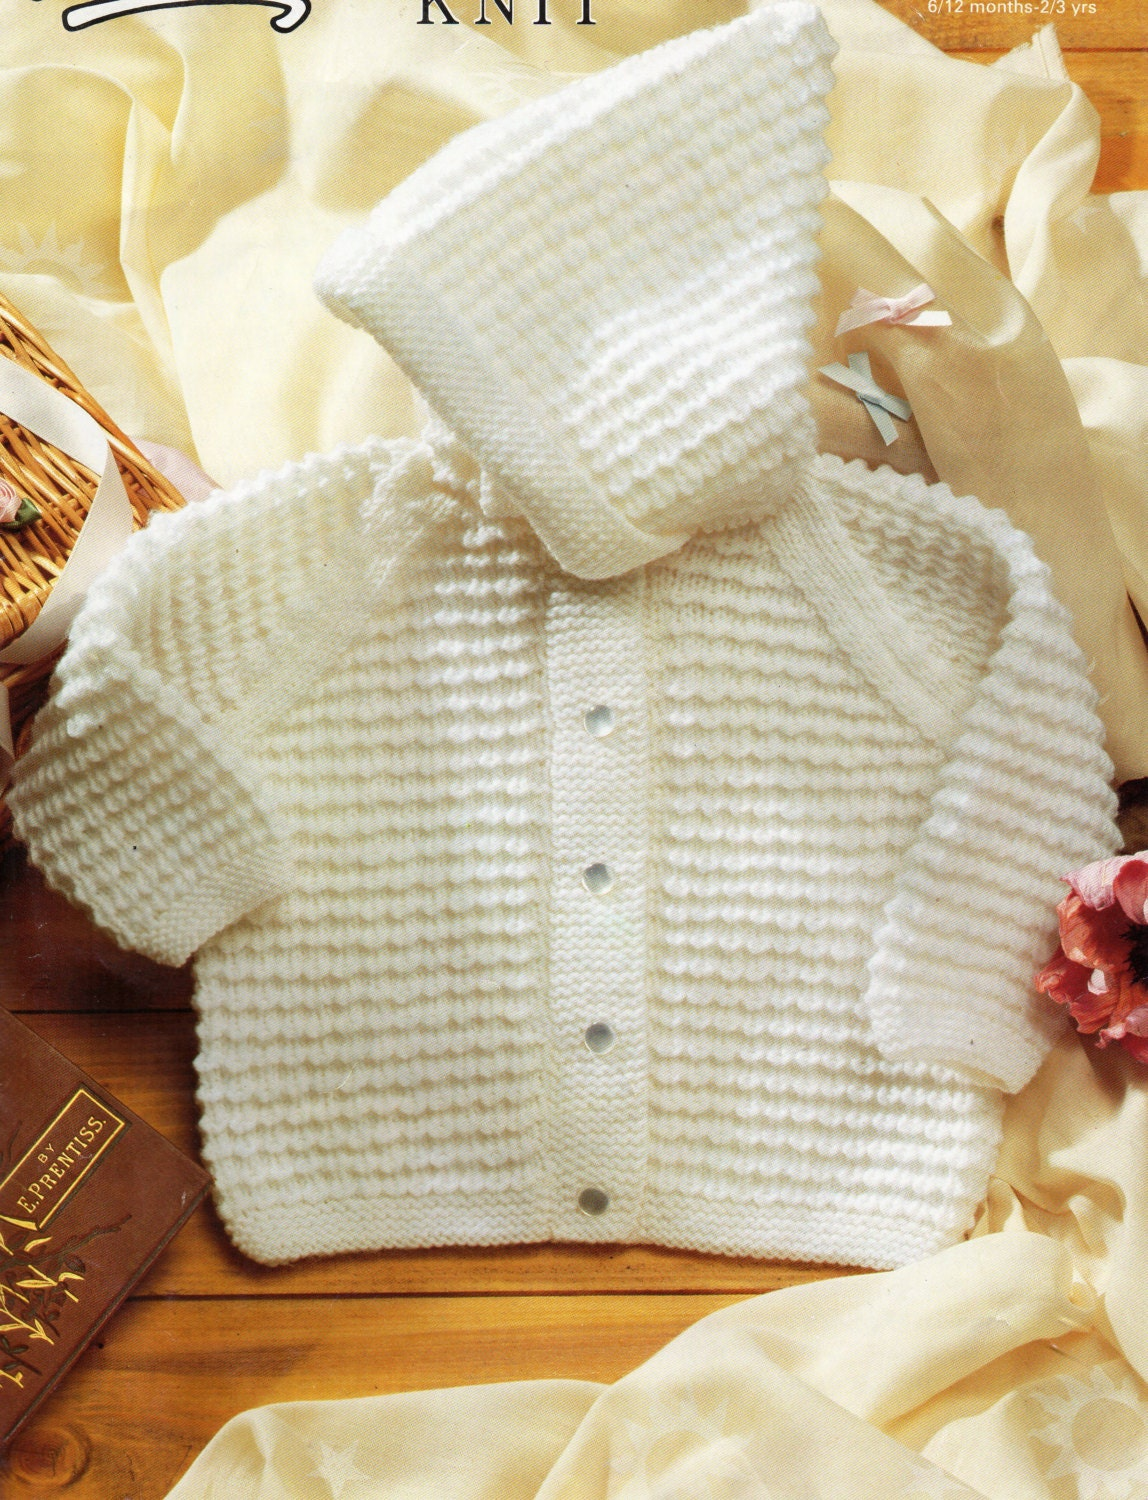 Knitting Pattern Baby Hooded Jacket : Baby Knitting Pattern baby hooded jacket baby hooded cardigan